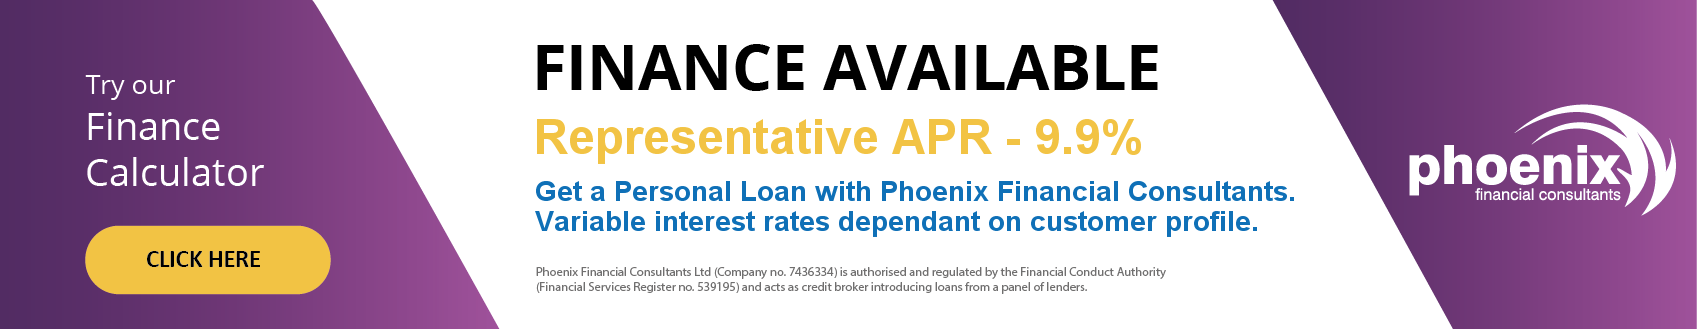 Finance available through Phoenix